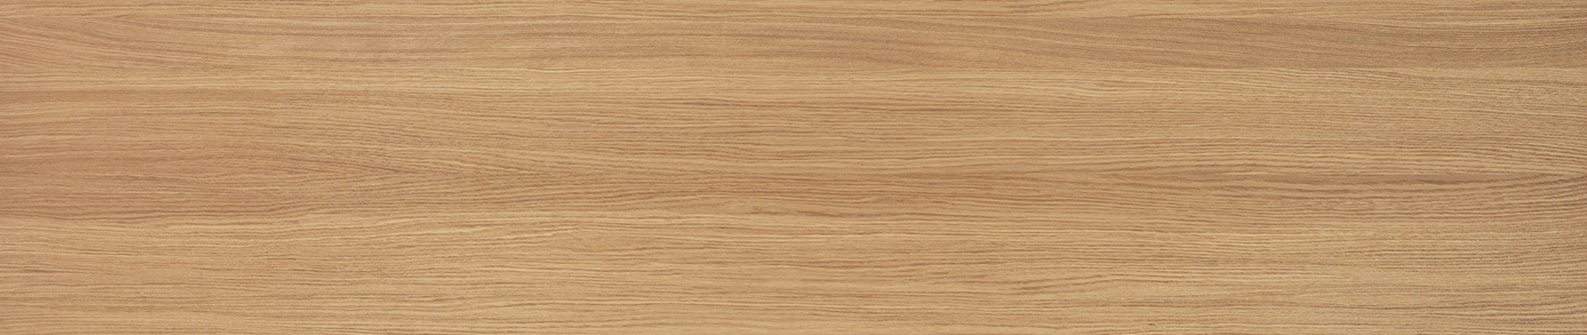 Astrata - Oak Natural Adagio - planks